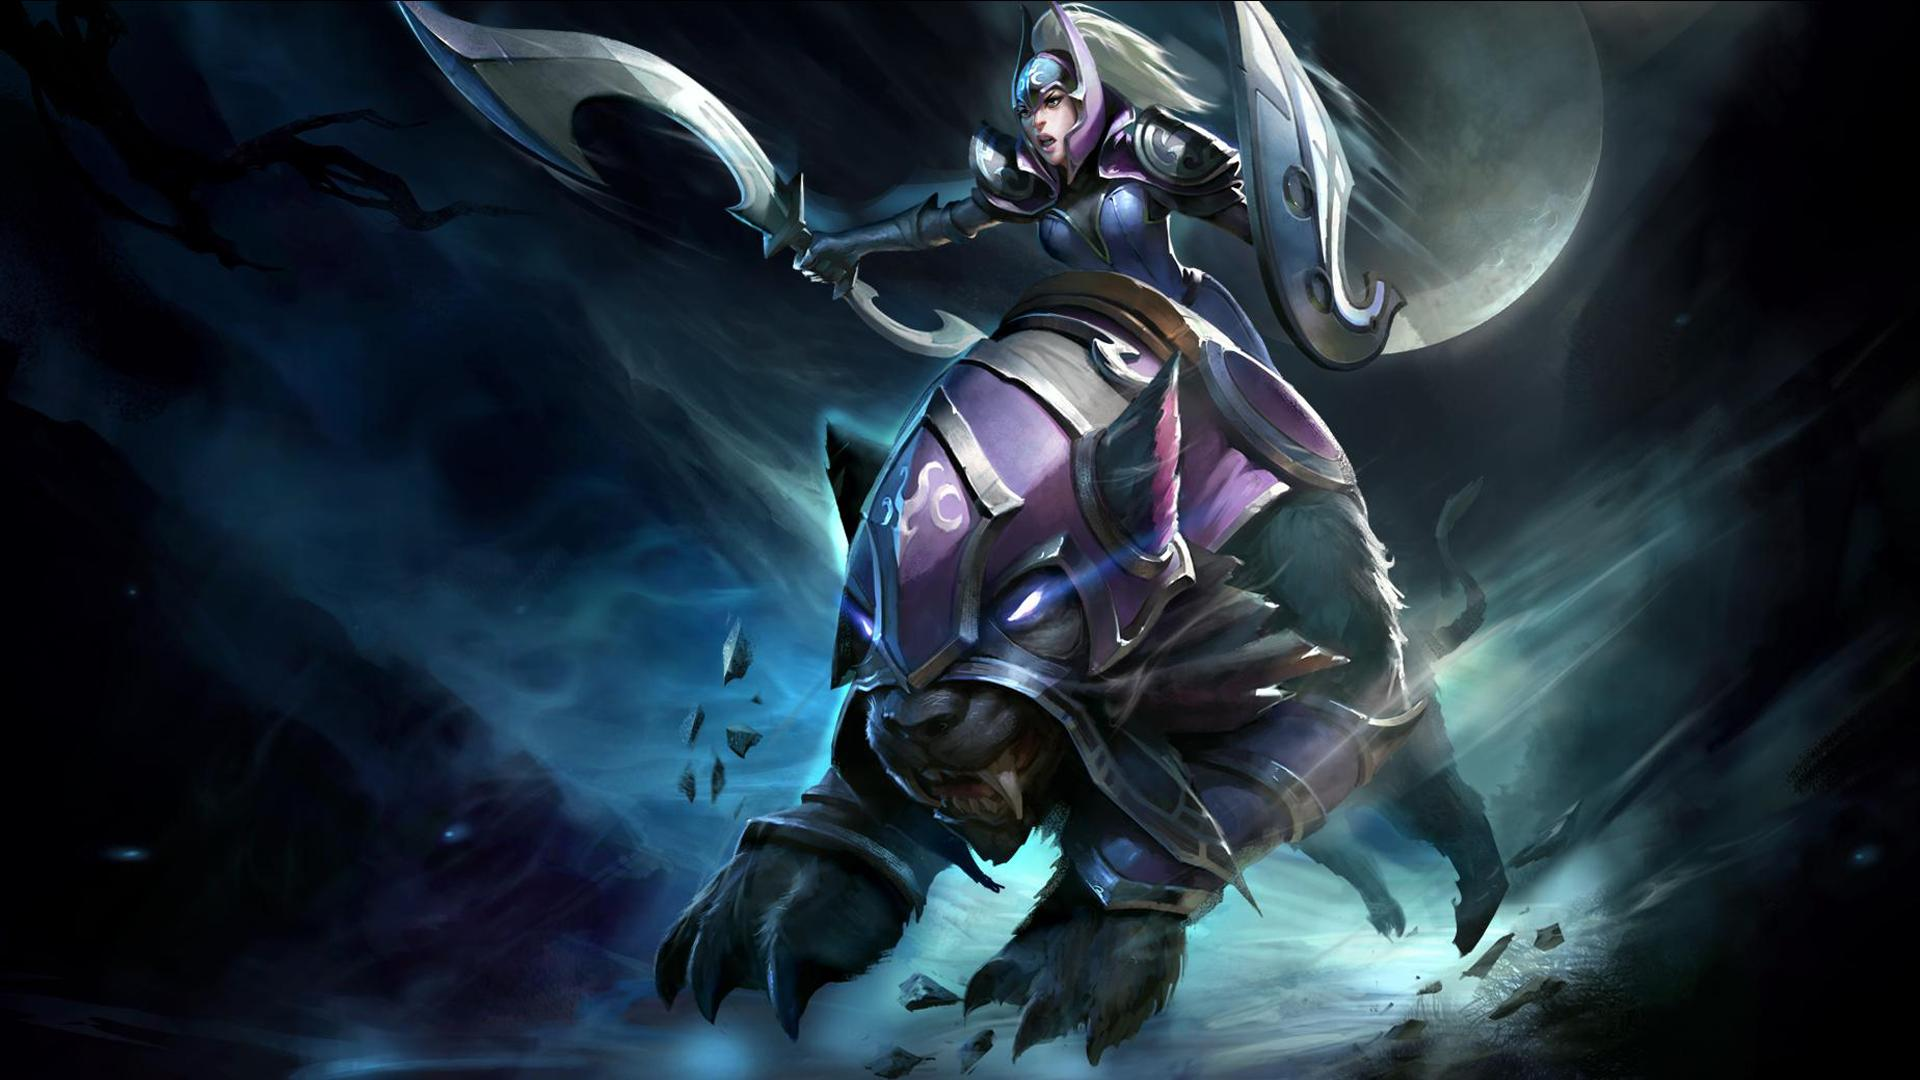 Dota2 wallpaper pc wallpapers gallery tactical gaming - 23 Luna Moon Rider By M1sk4